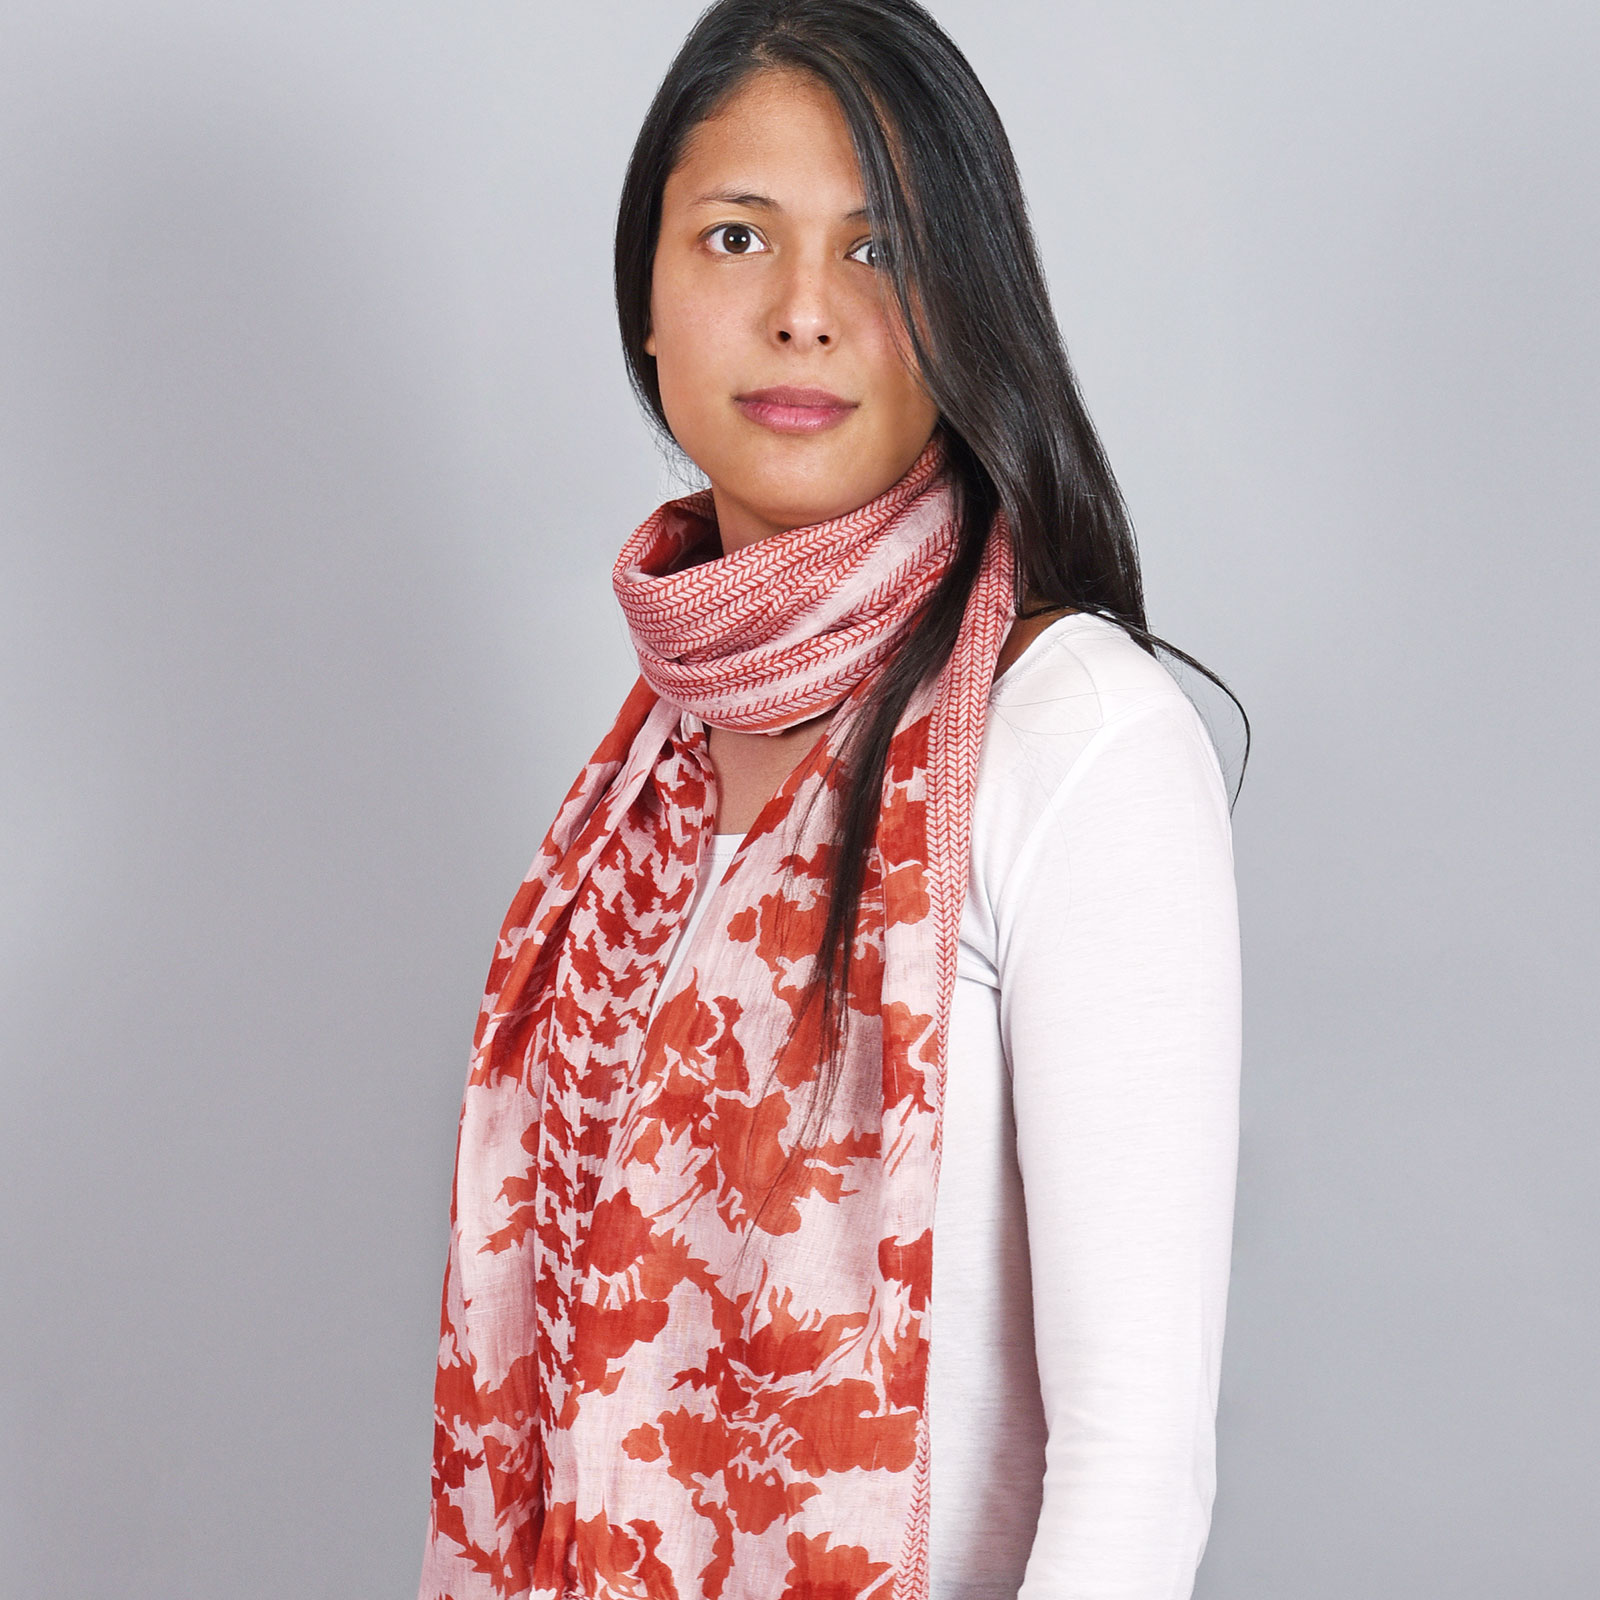 AT-01860-VF16-1-foulard-cheche-coton-rose-orange